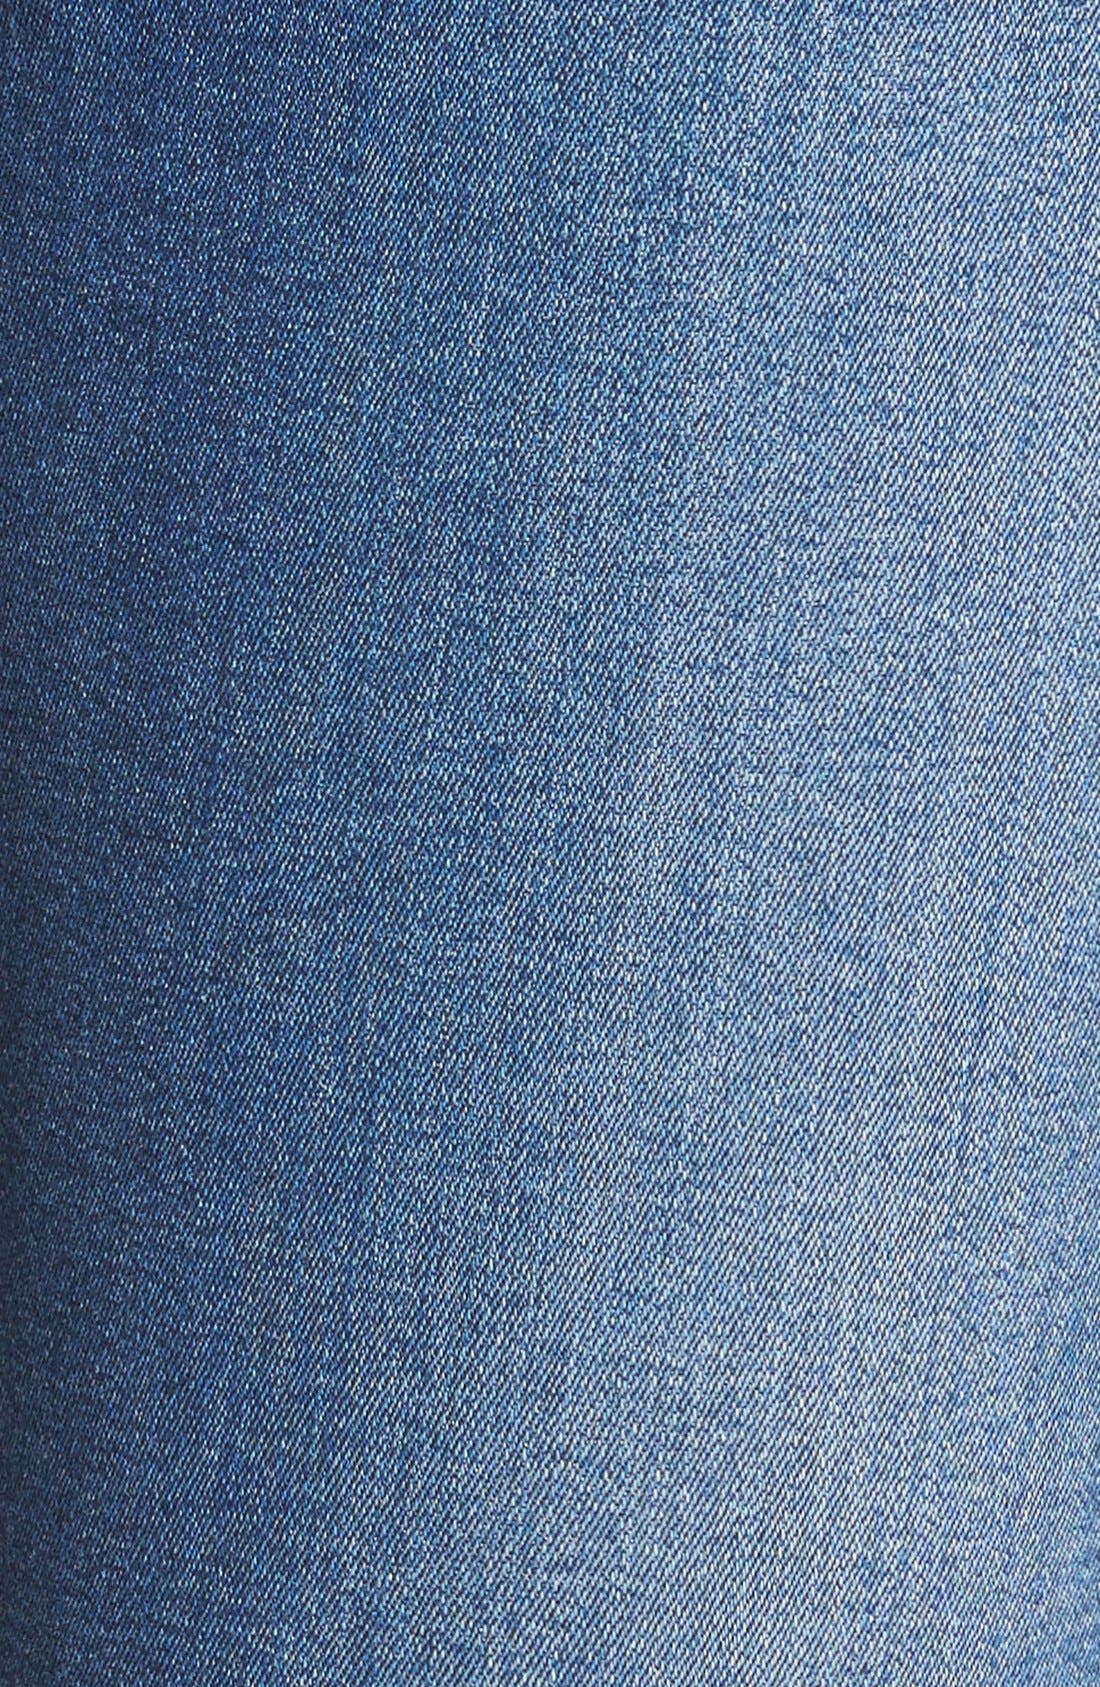 'b(air) - The Ankle' Skinny Jeans,                             Alternate thumbnail 24, color,